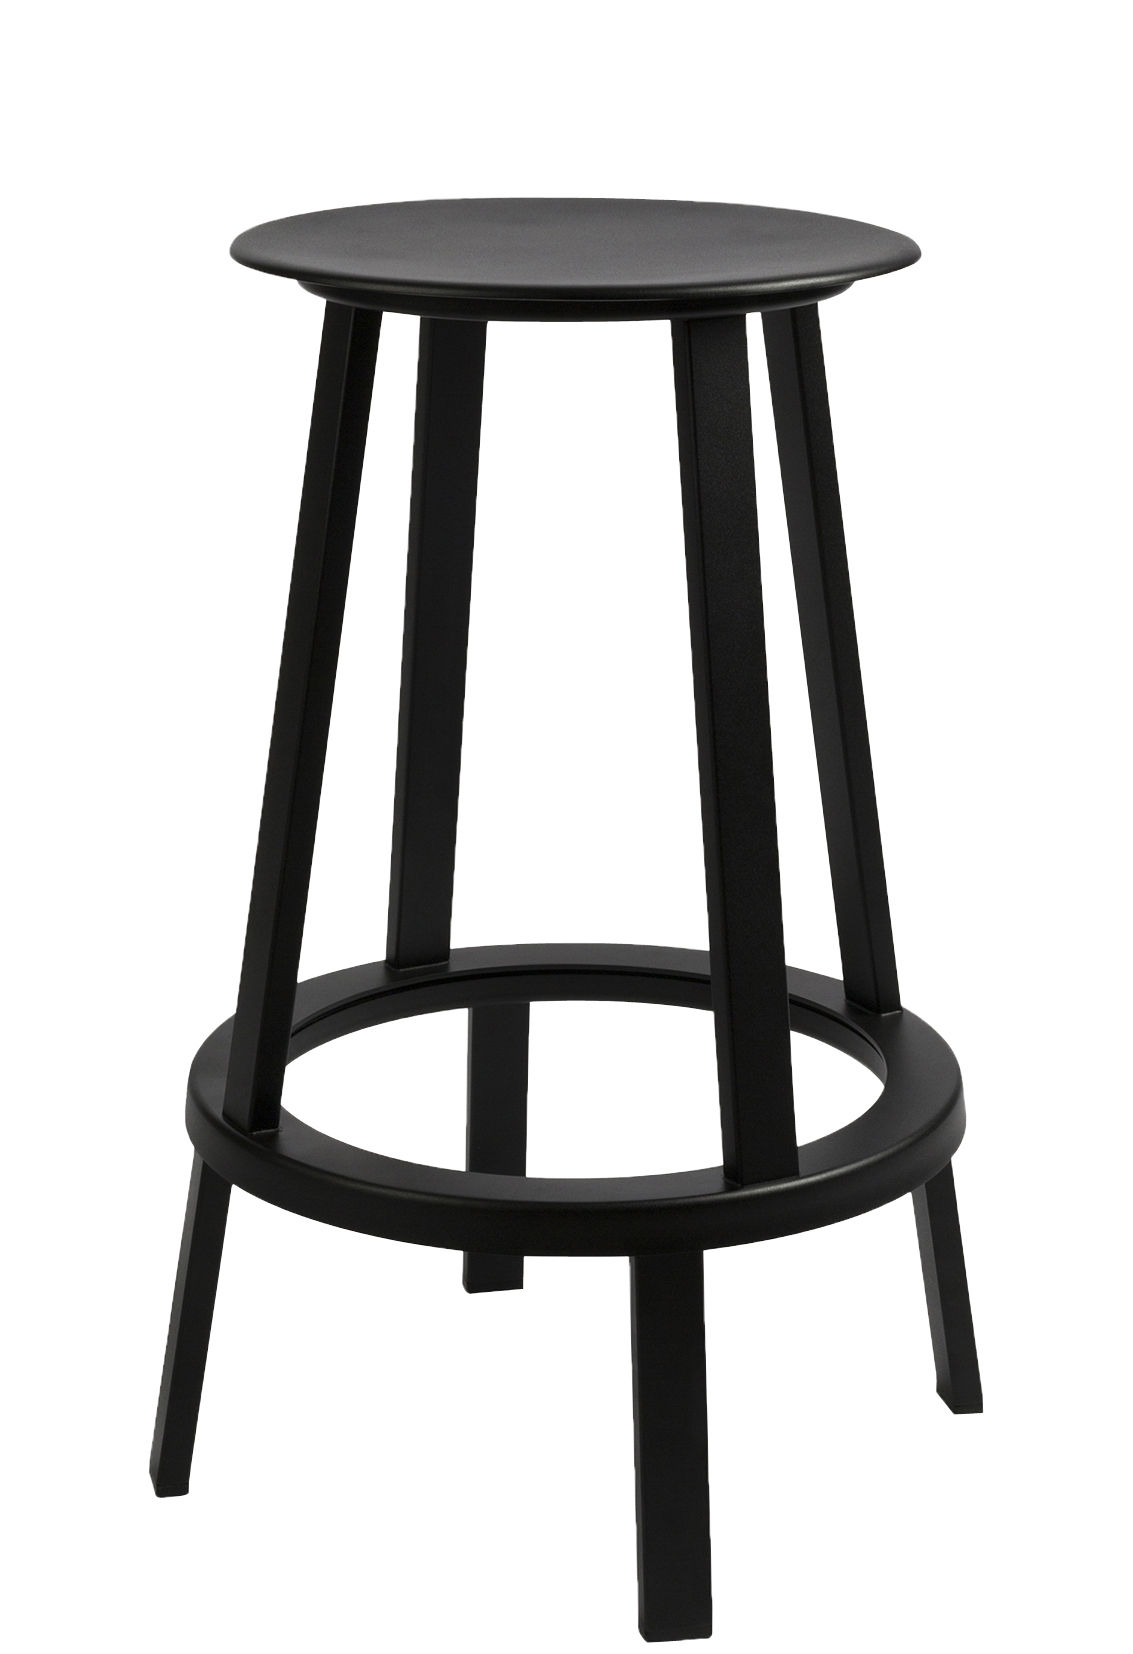 Furniture - Bar Stools - Revolver Swivel bar stool - H 65 cm - Metal by Hay - Black - Steel xith epowy paint